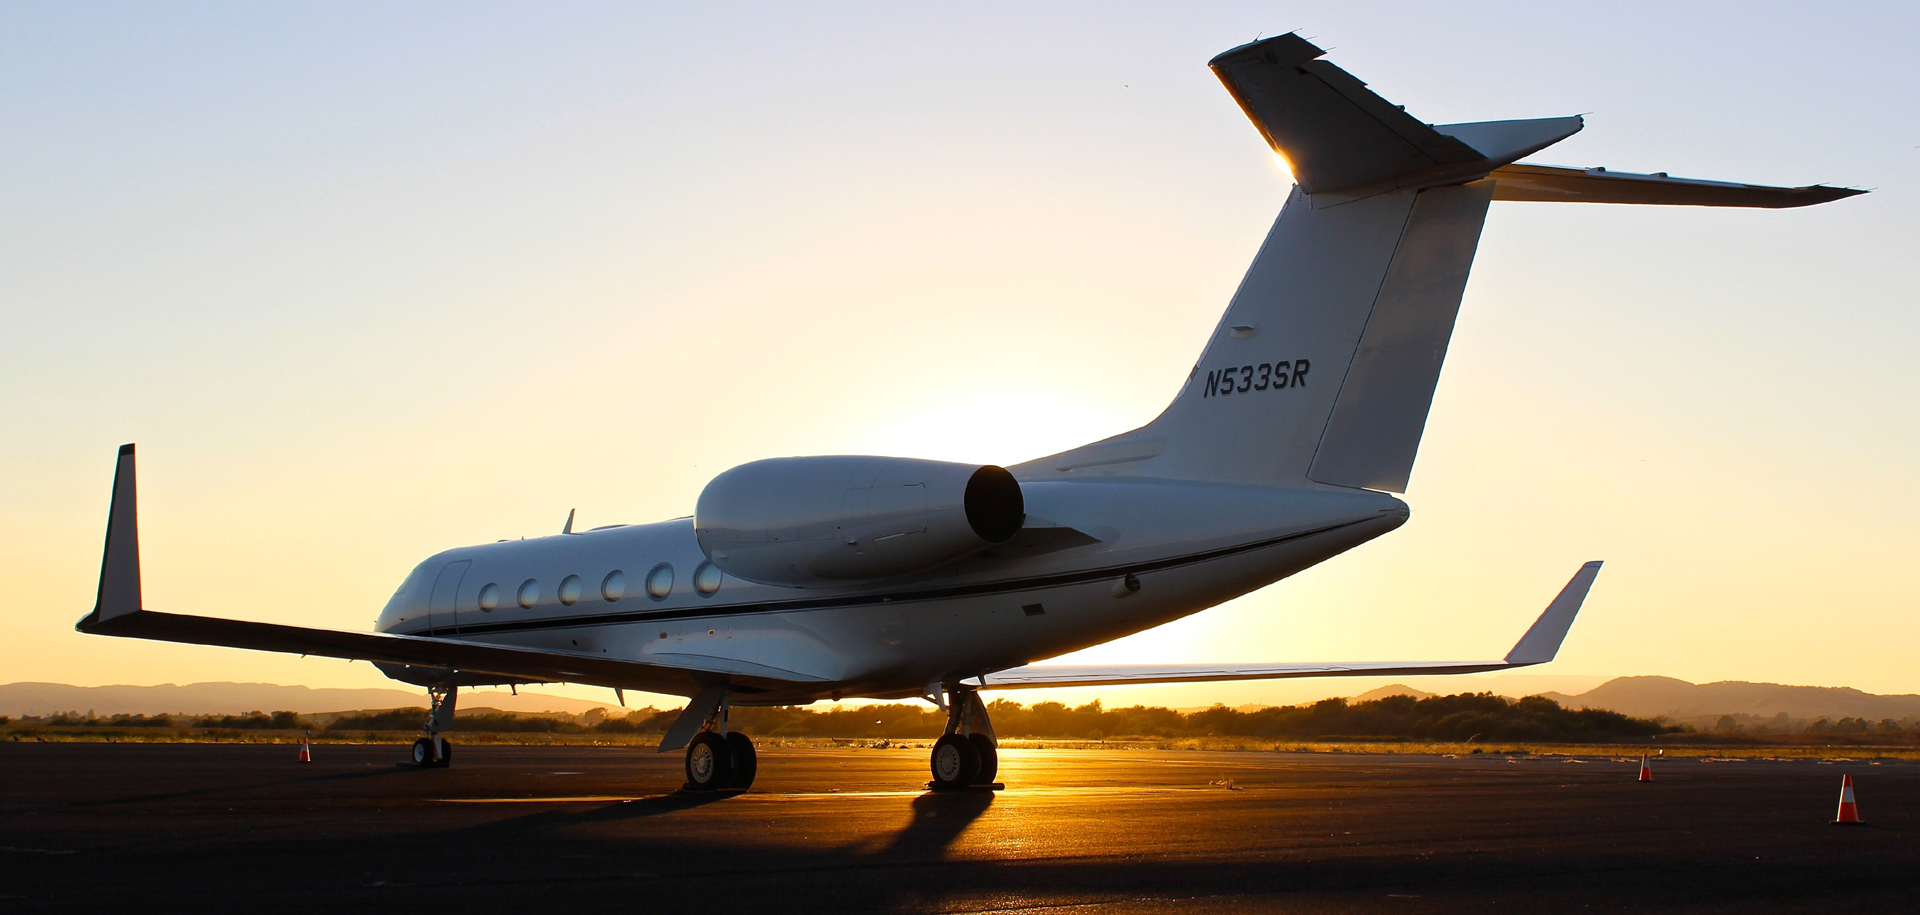 Private Jet Flight Services in Europe EvroJet - Jet Flight Services in 35 Airports of Europe: Ground Handling Services, Flight Planning & Permits, Refueling Services, Charters